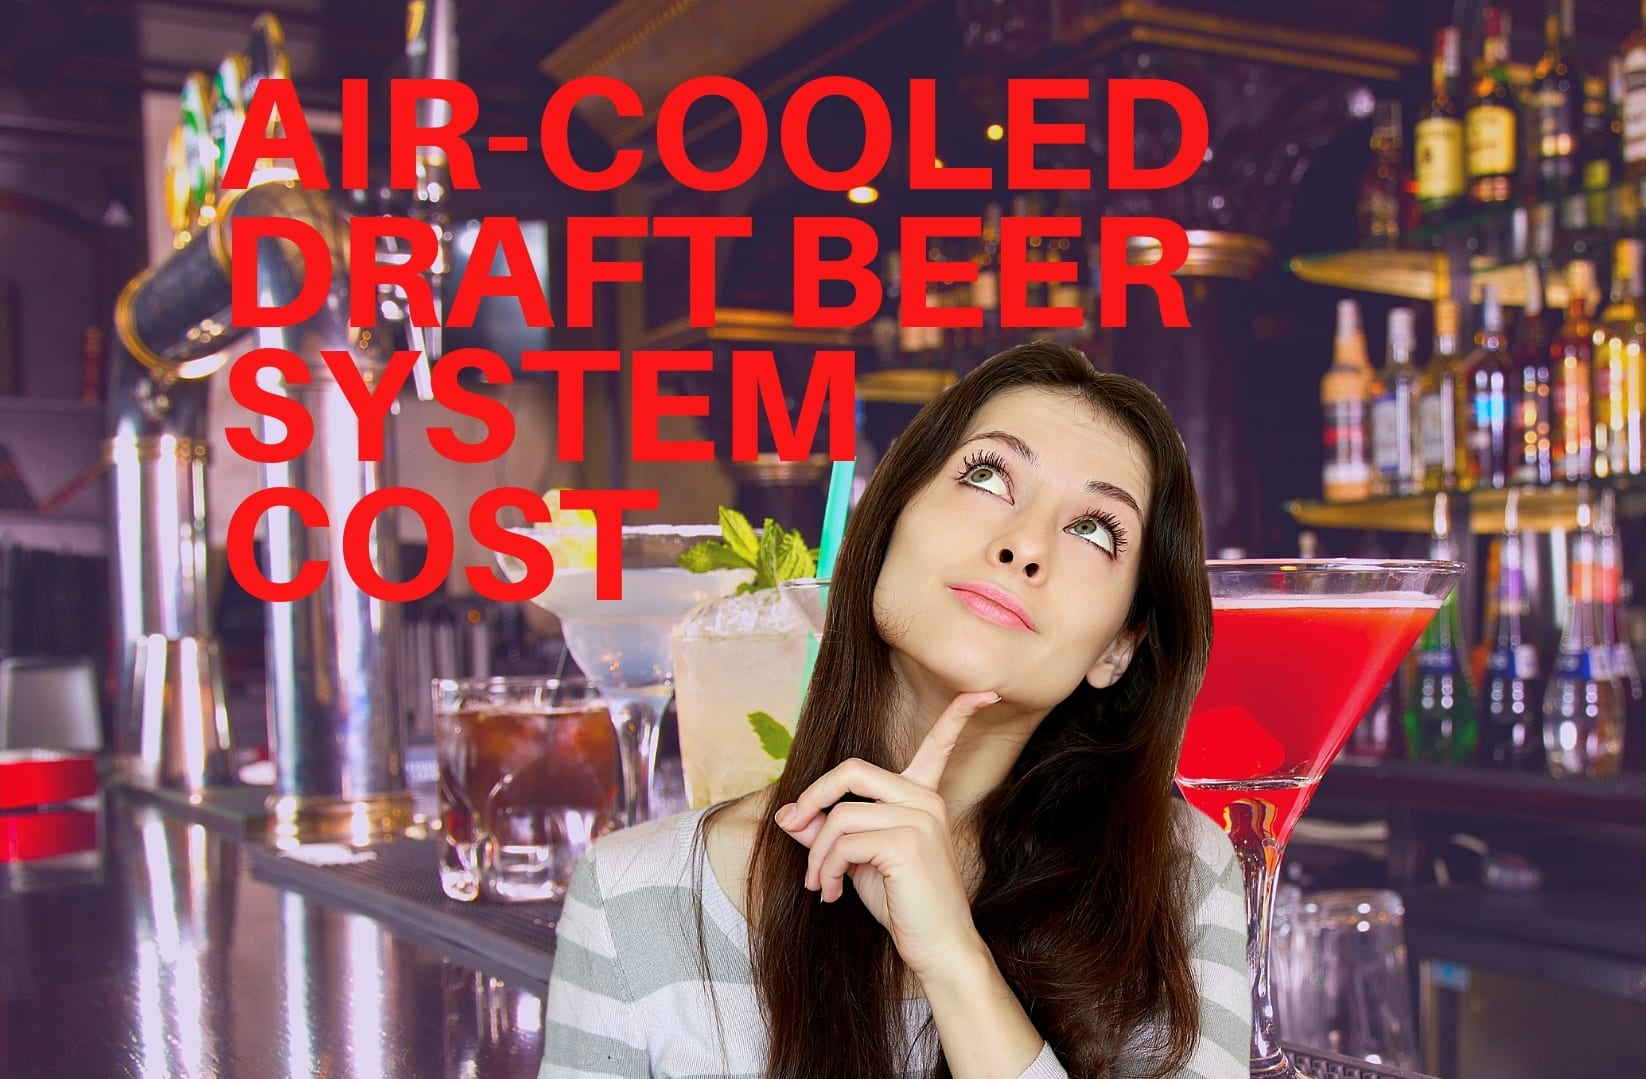 AIR-COOLED-DRAFT-BEER-SYSTEM-COST-TN